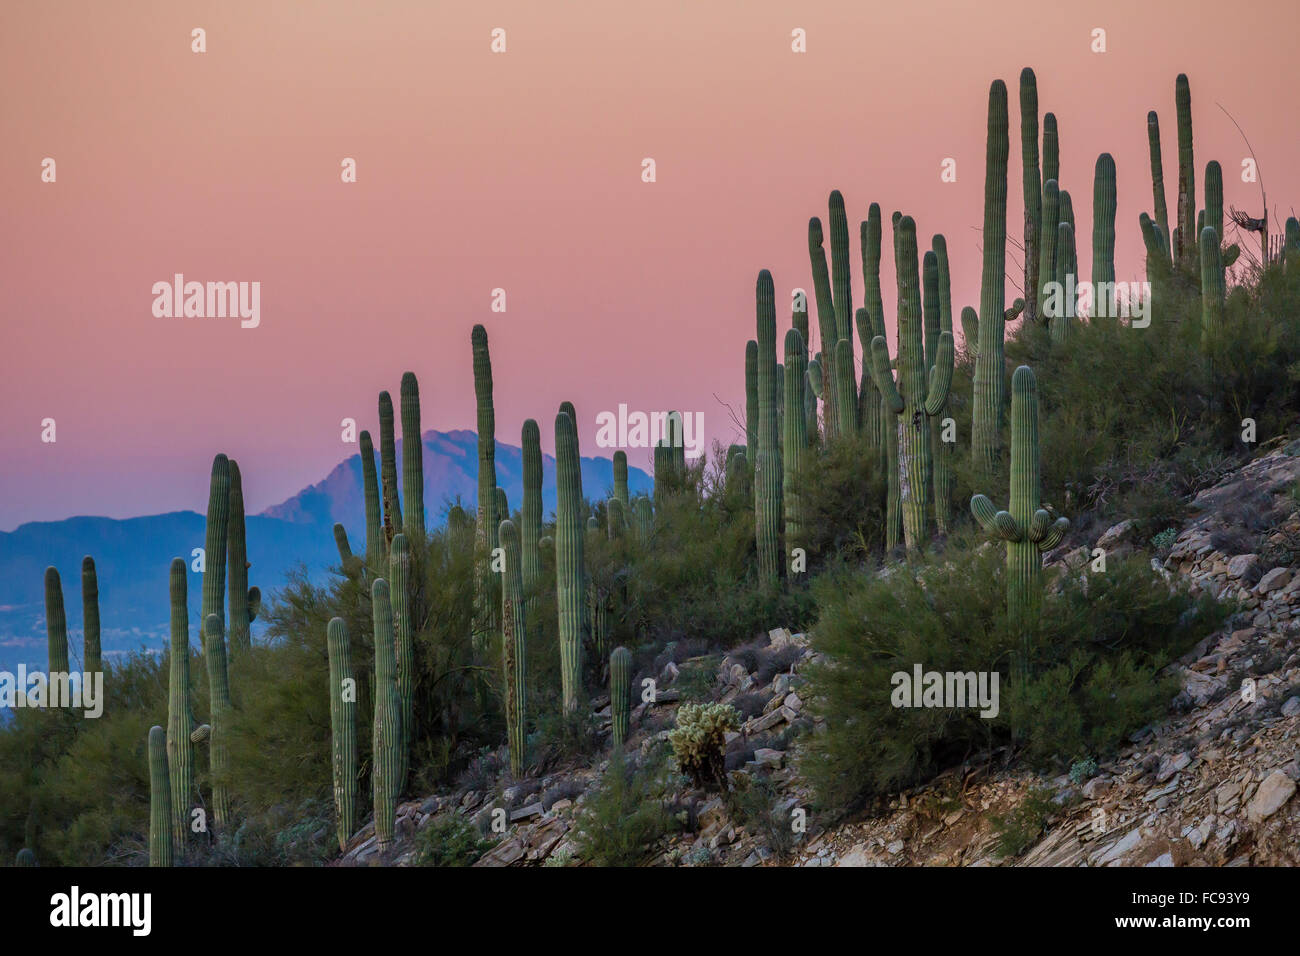 Giant saguaro cactus (Carnegiea gigantea), under full moon in the Catalina Mountains, Tucson, Arizona, United States Stock Photo